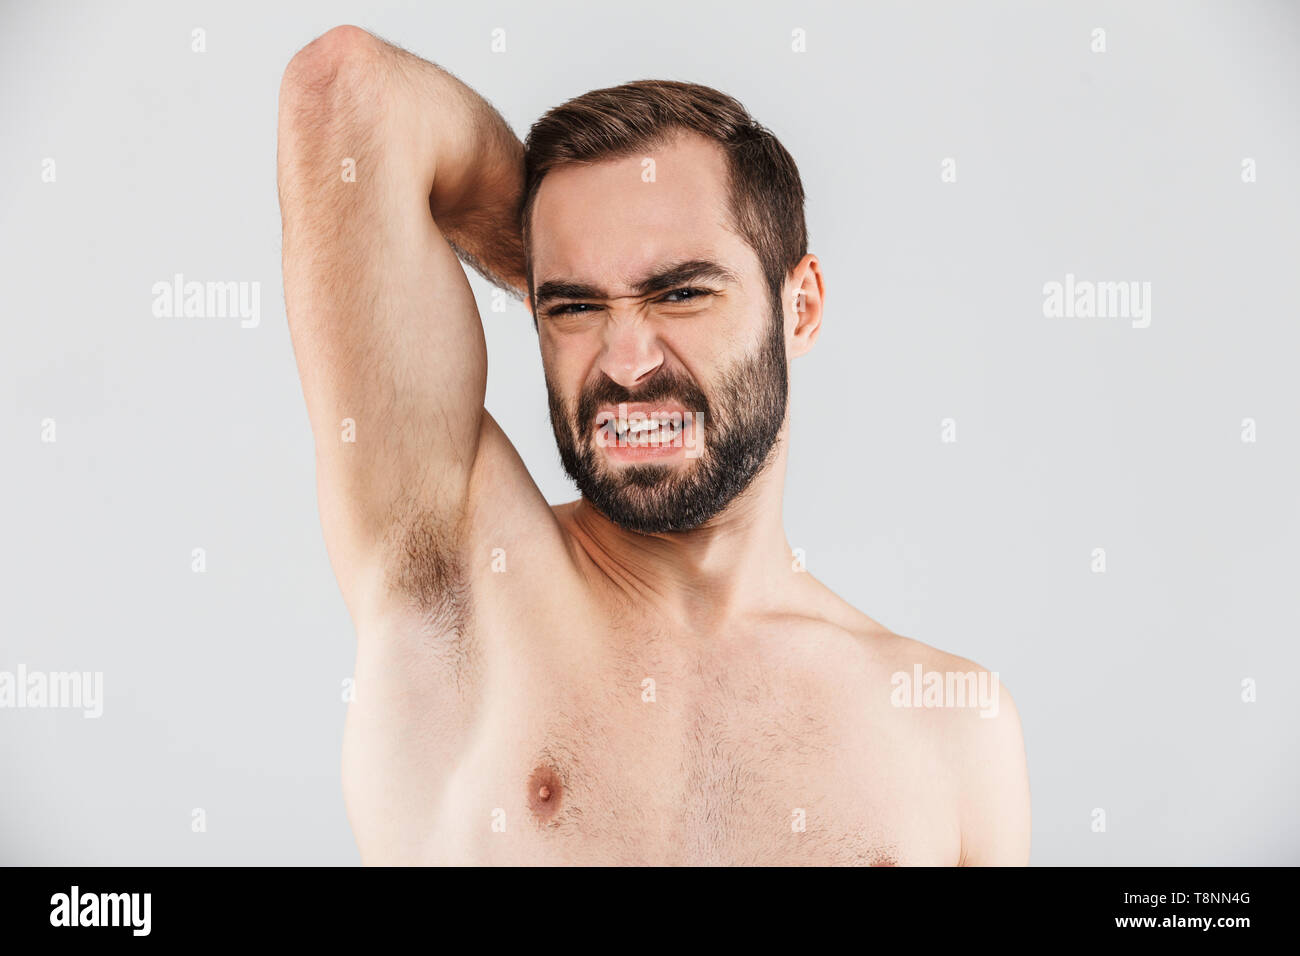 Close up portrait of a disgusted bearded man standing isolated over white background, smelling his armpit - Stock Image